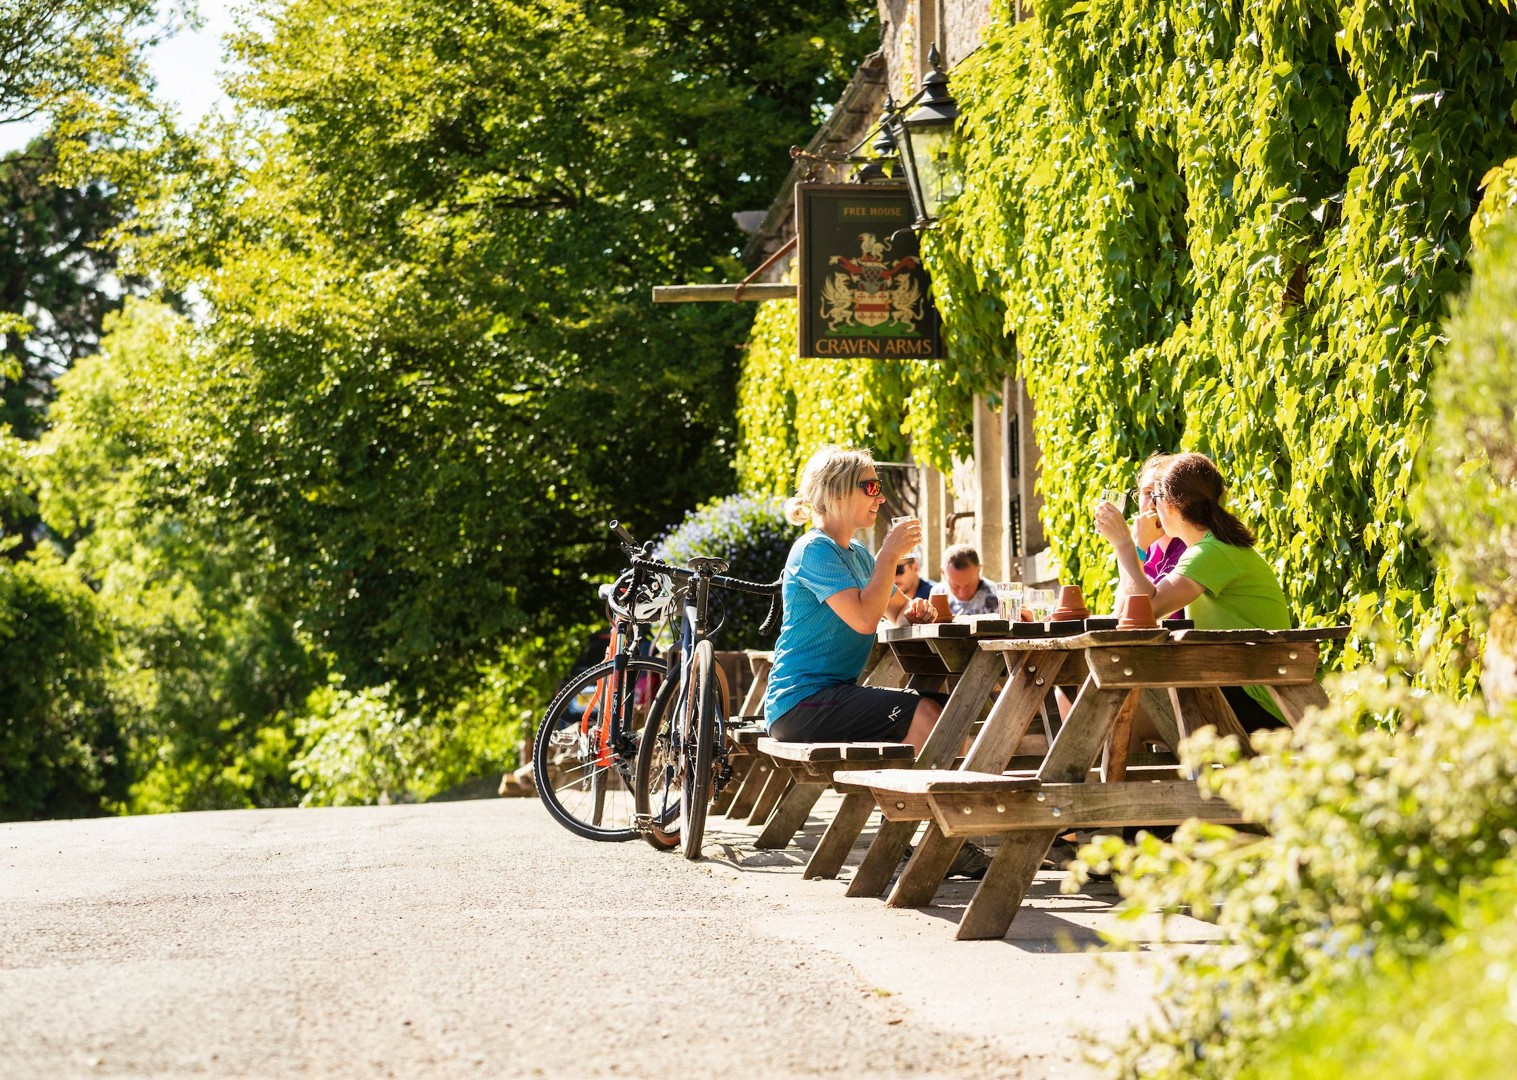 local-pubs-cuisine-british-cycling-for-fun.jpg - UK - Way of the Roses 5 Days Cycling - Self-Guided Leisure Cycling Holiday - Leisure Cycling